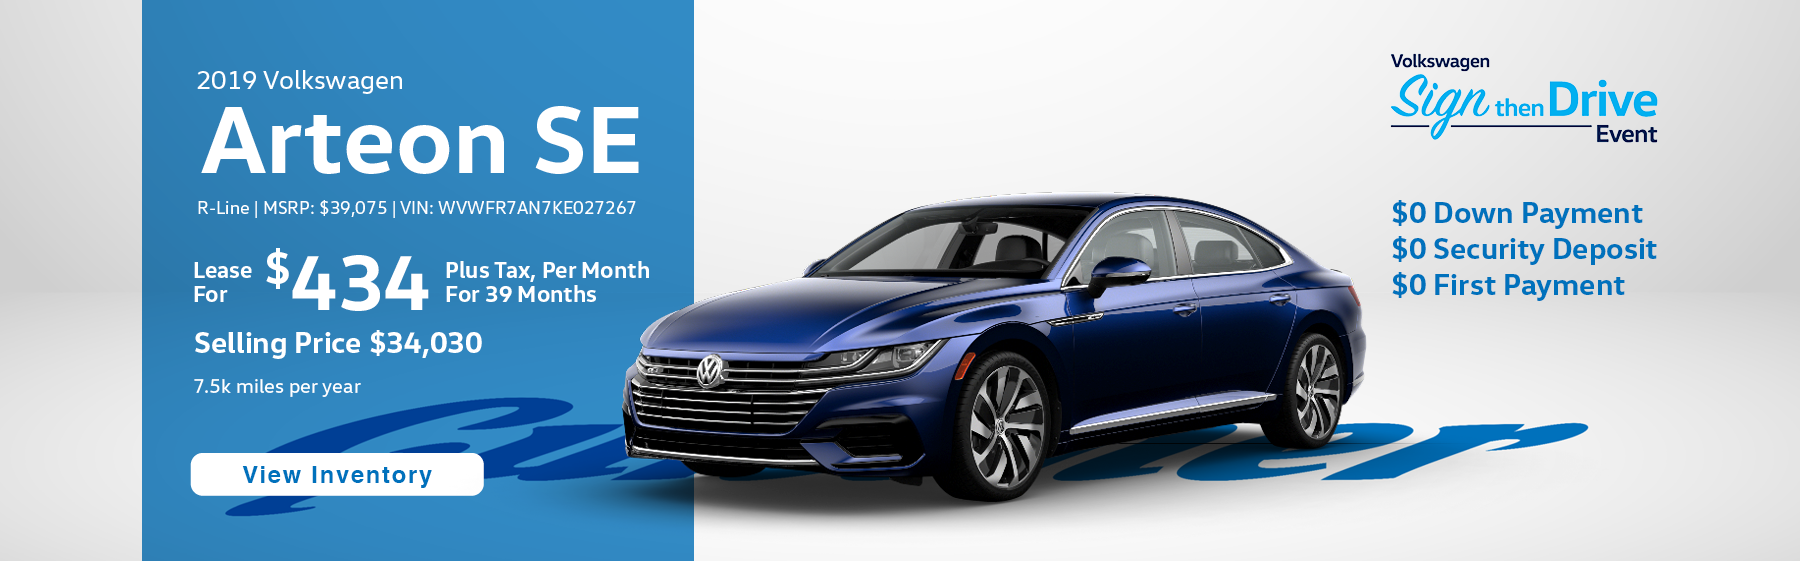 Lease the 2019 Volkswagen Arteon SE R-Line for $434 plus tax for 39 months.